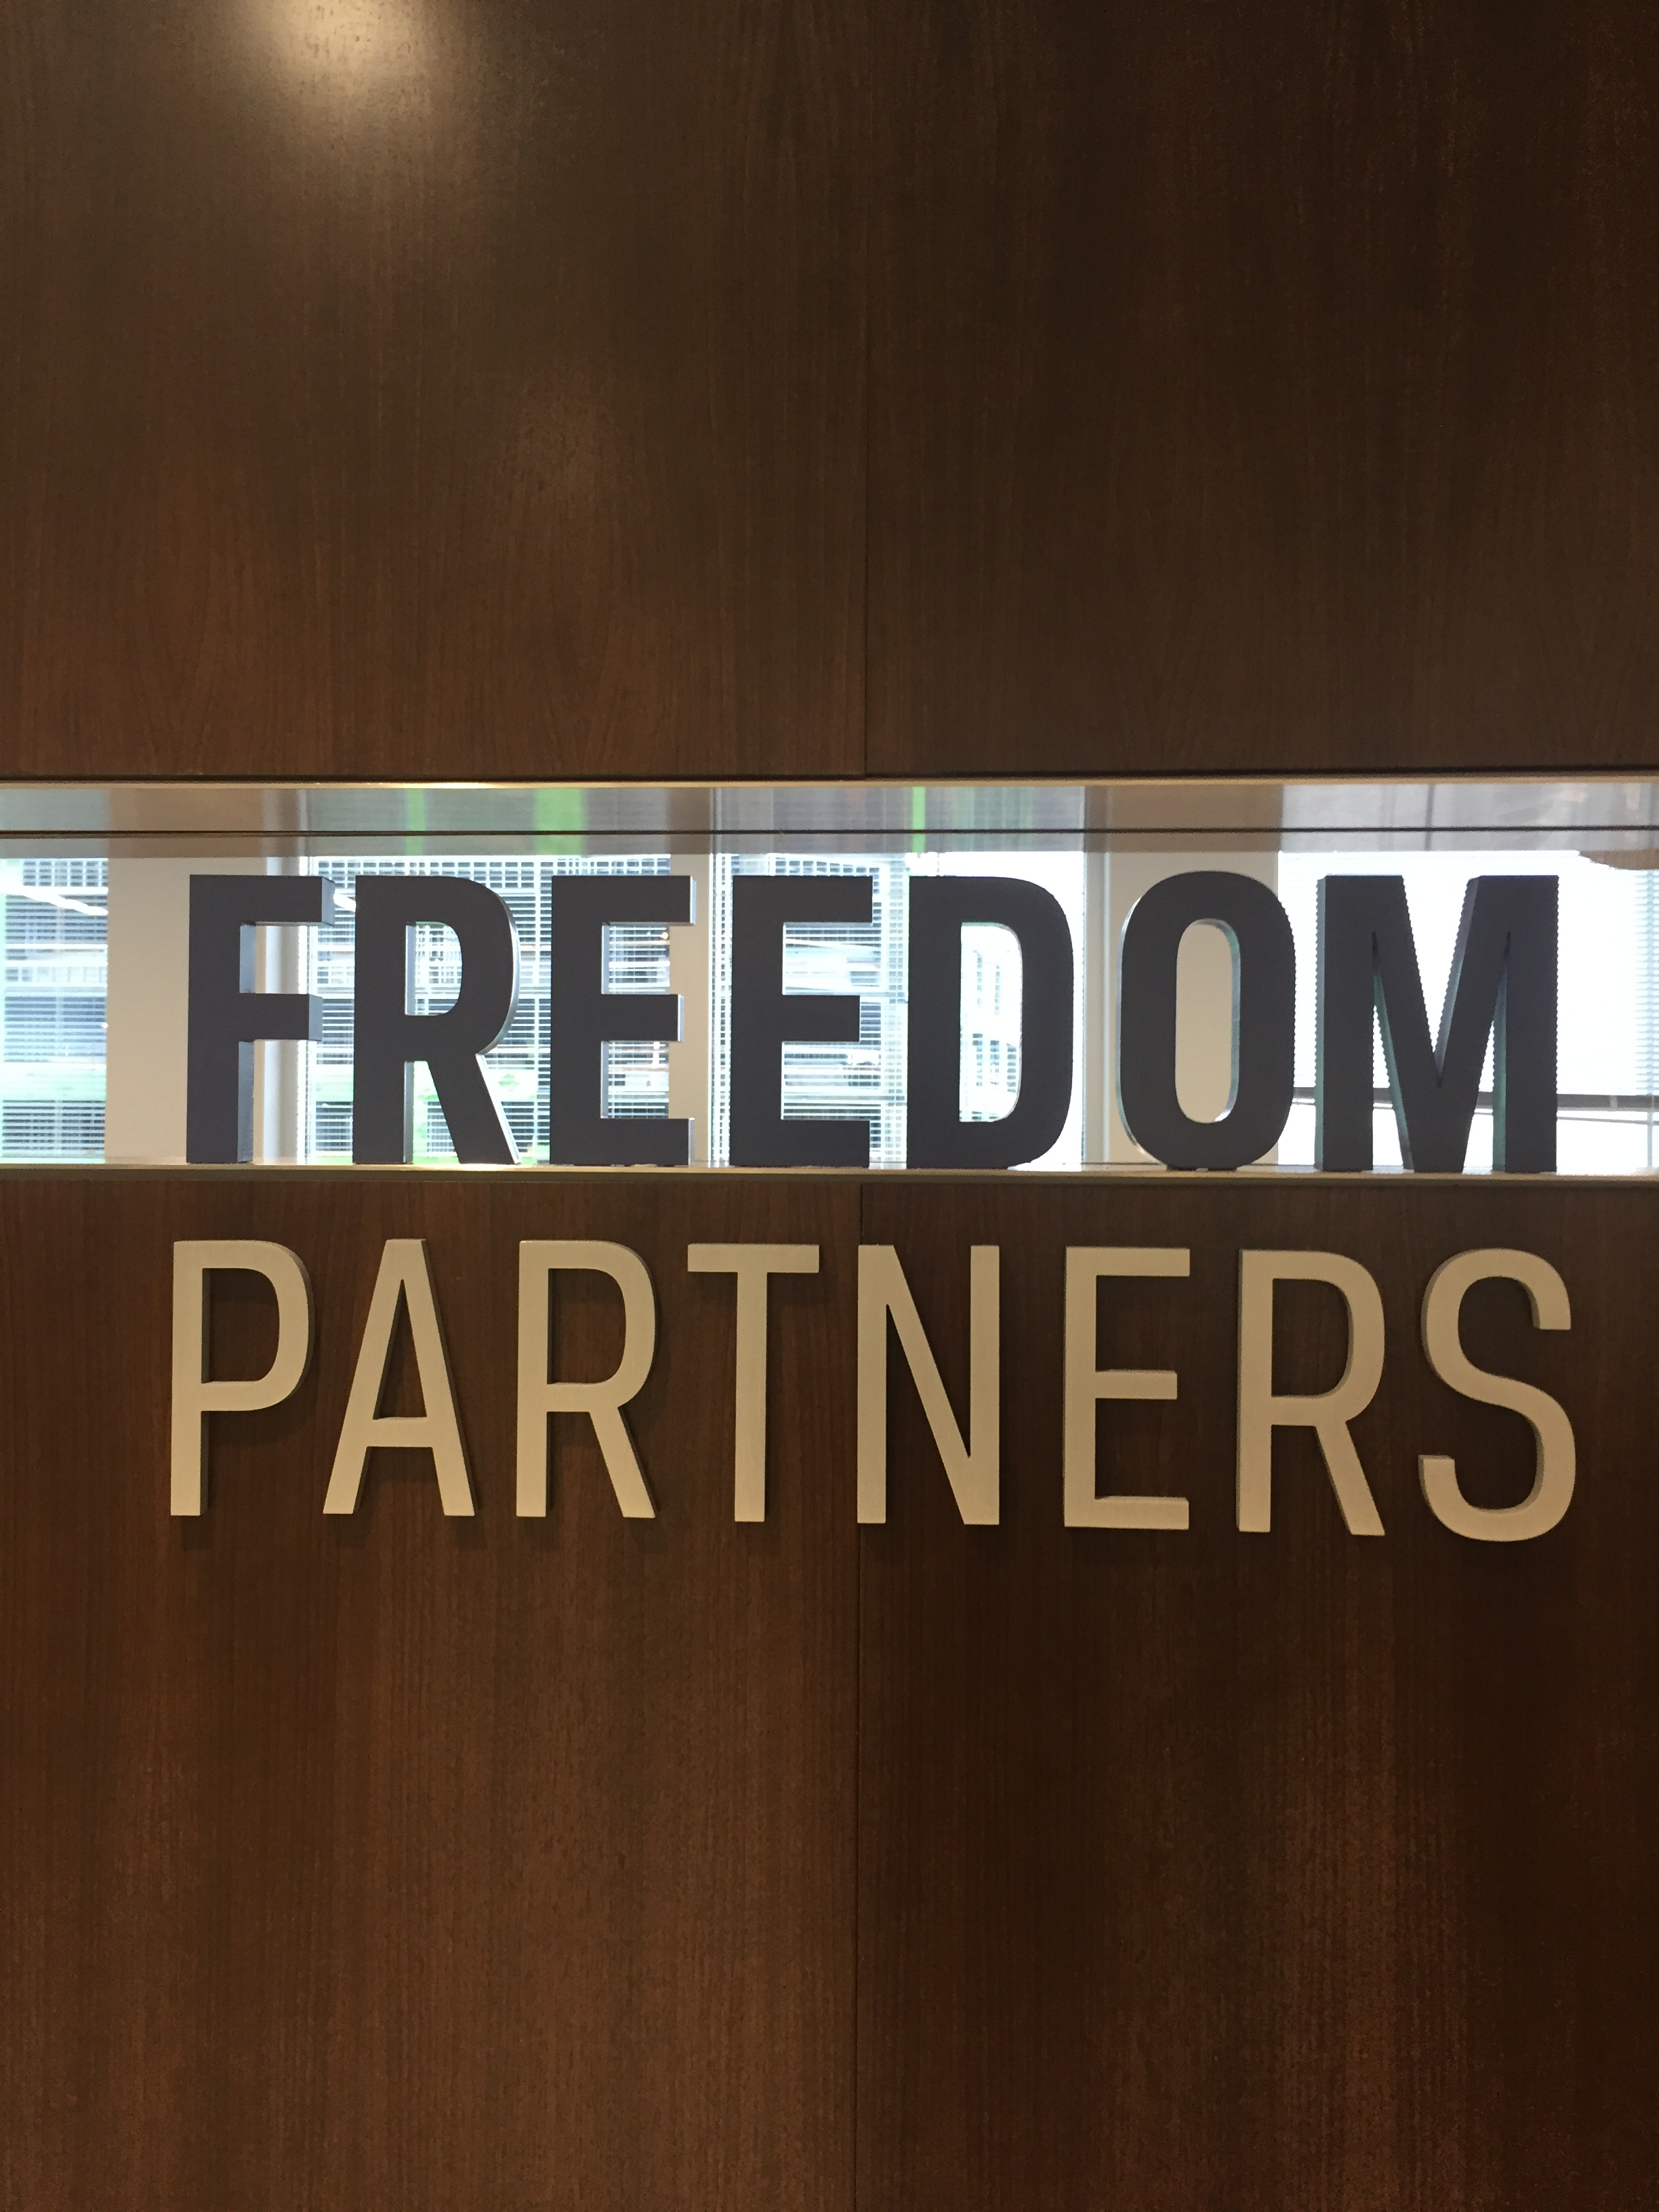 Freedom Partners letter sign